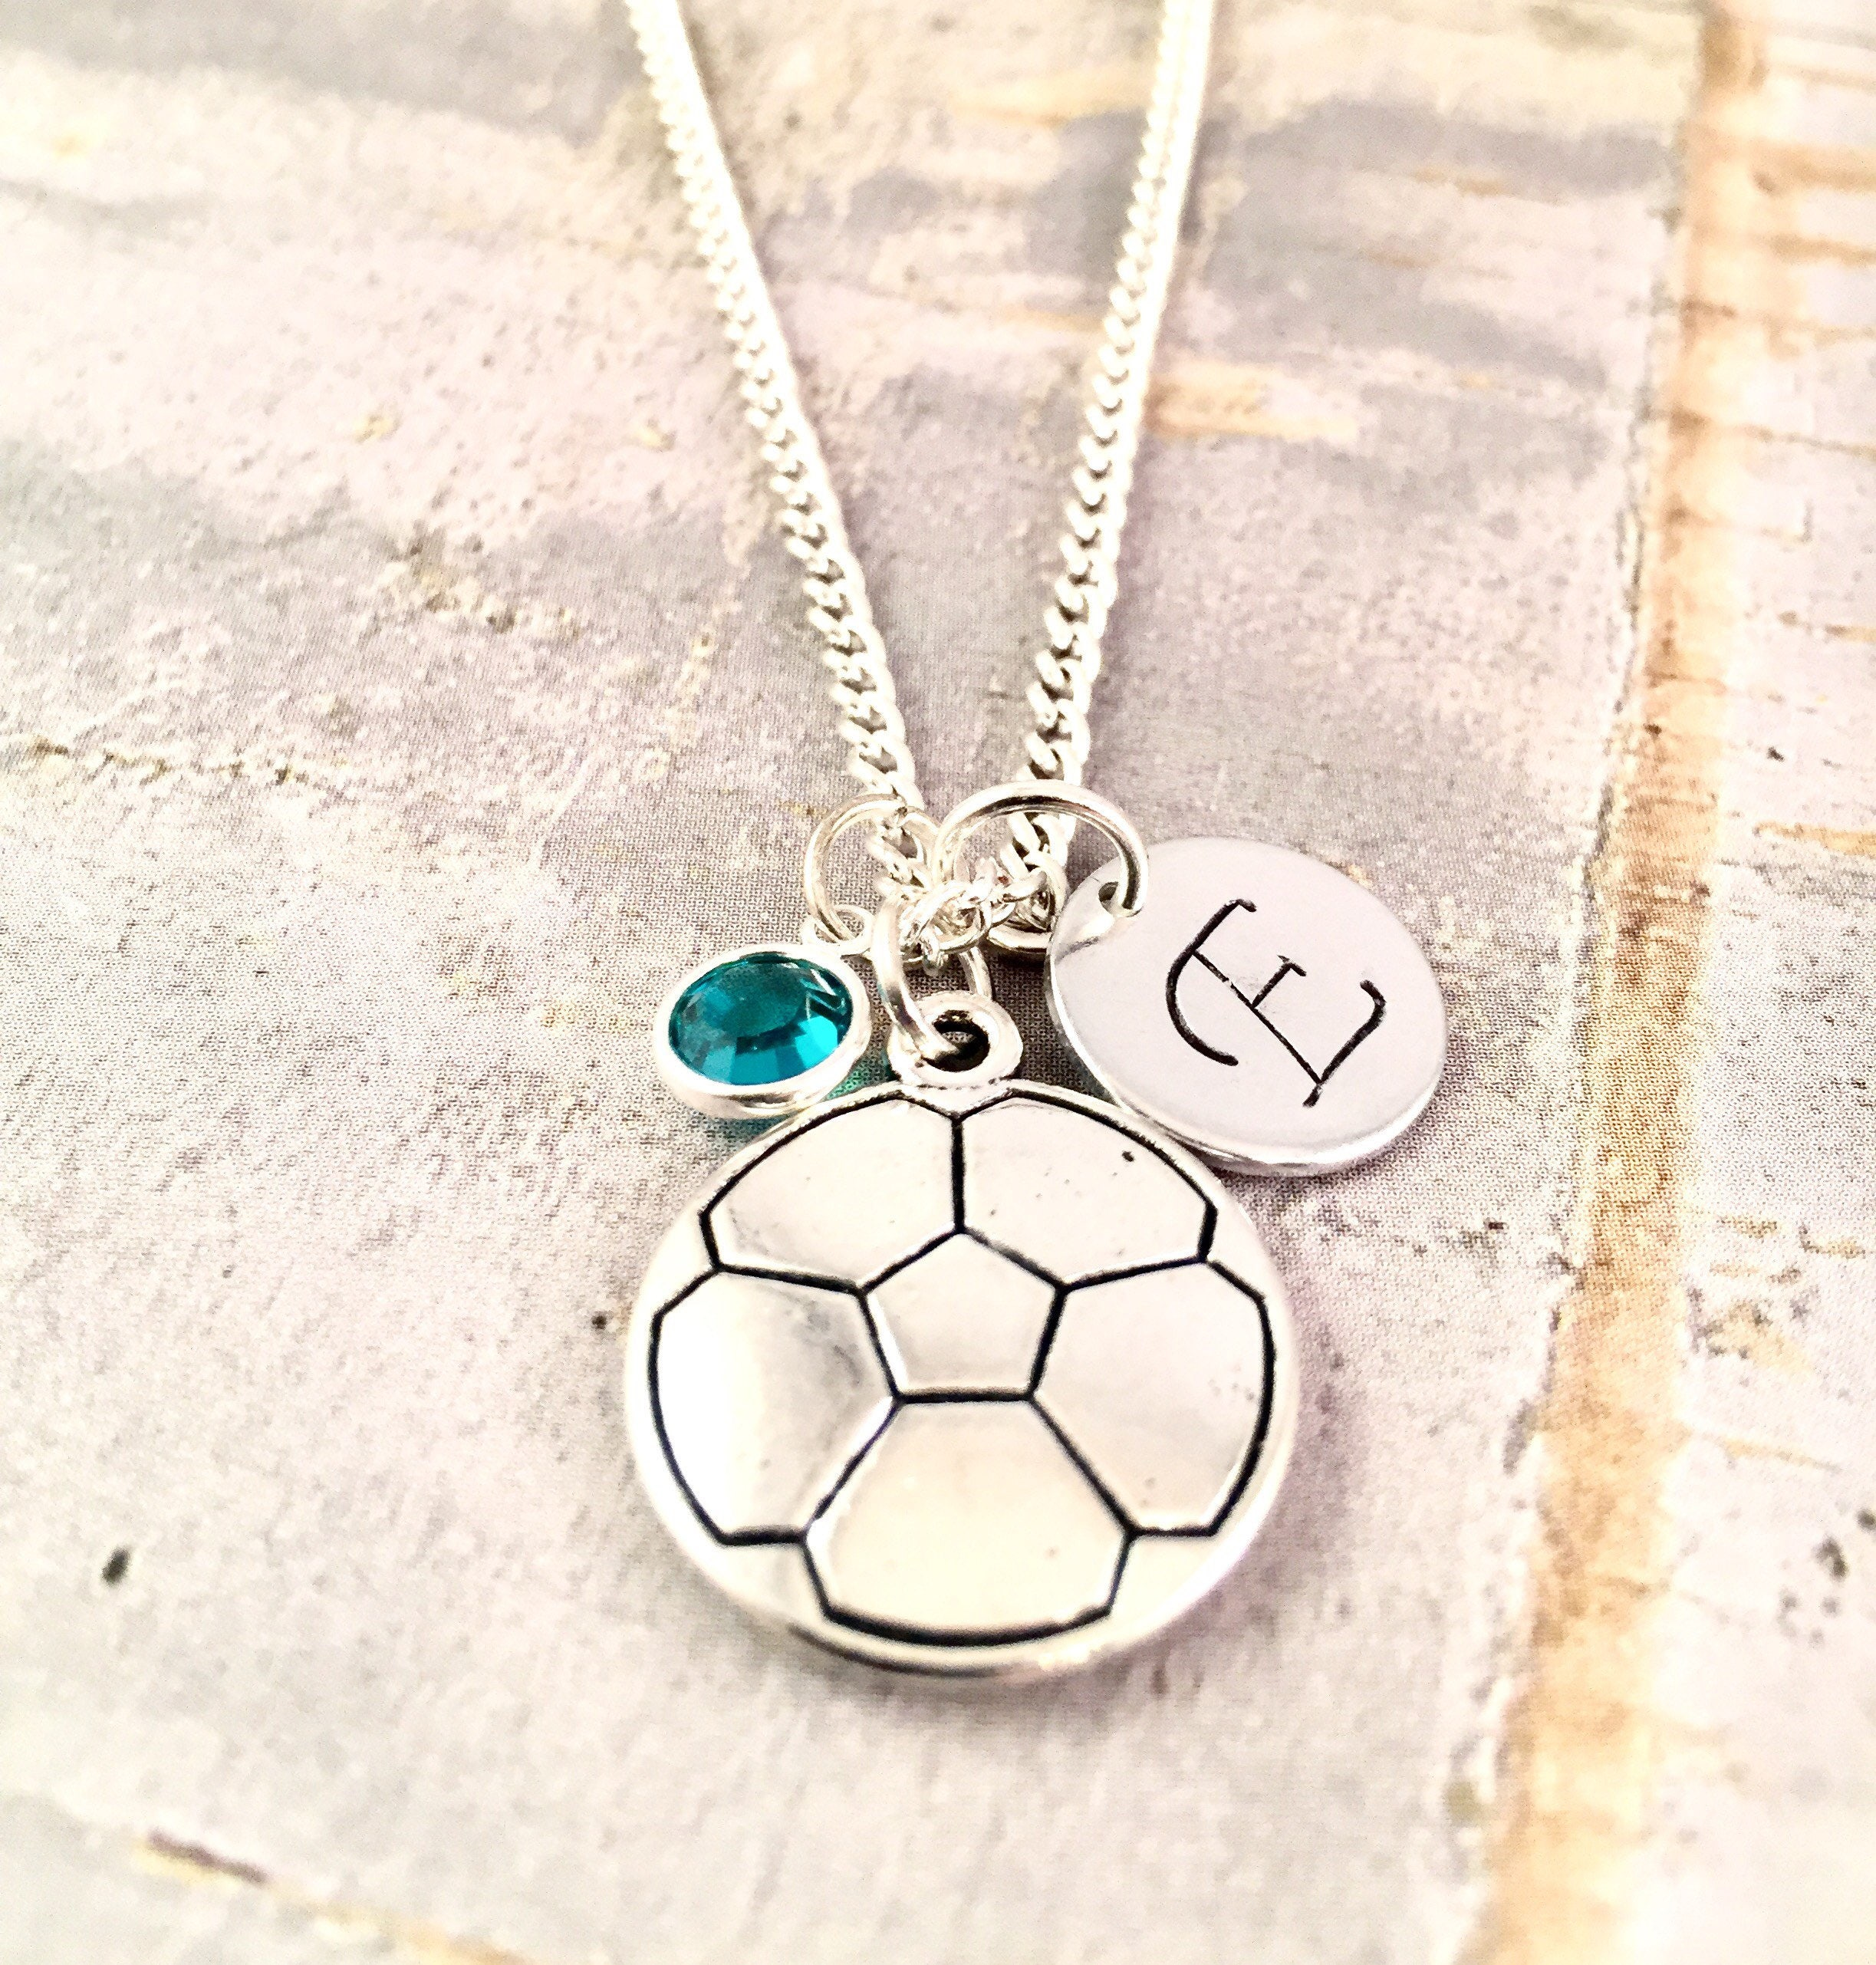 s soccer layered necklace claire pendant jingle bell long